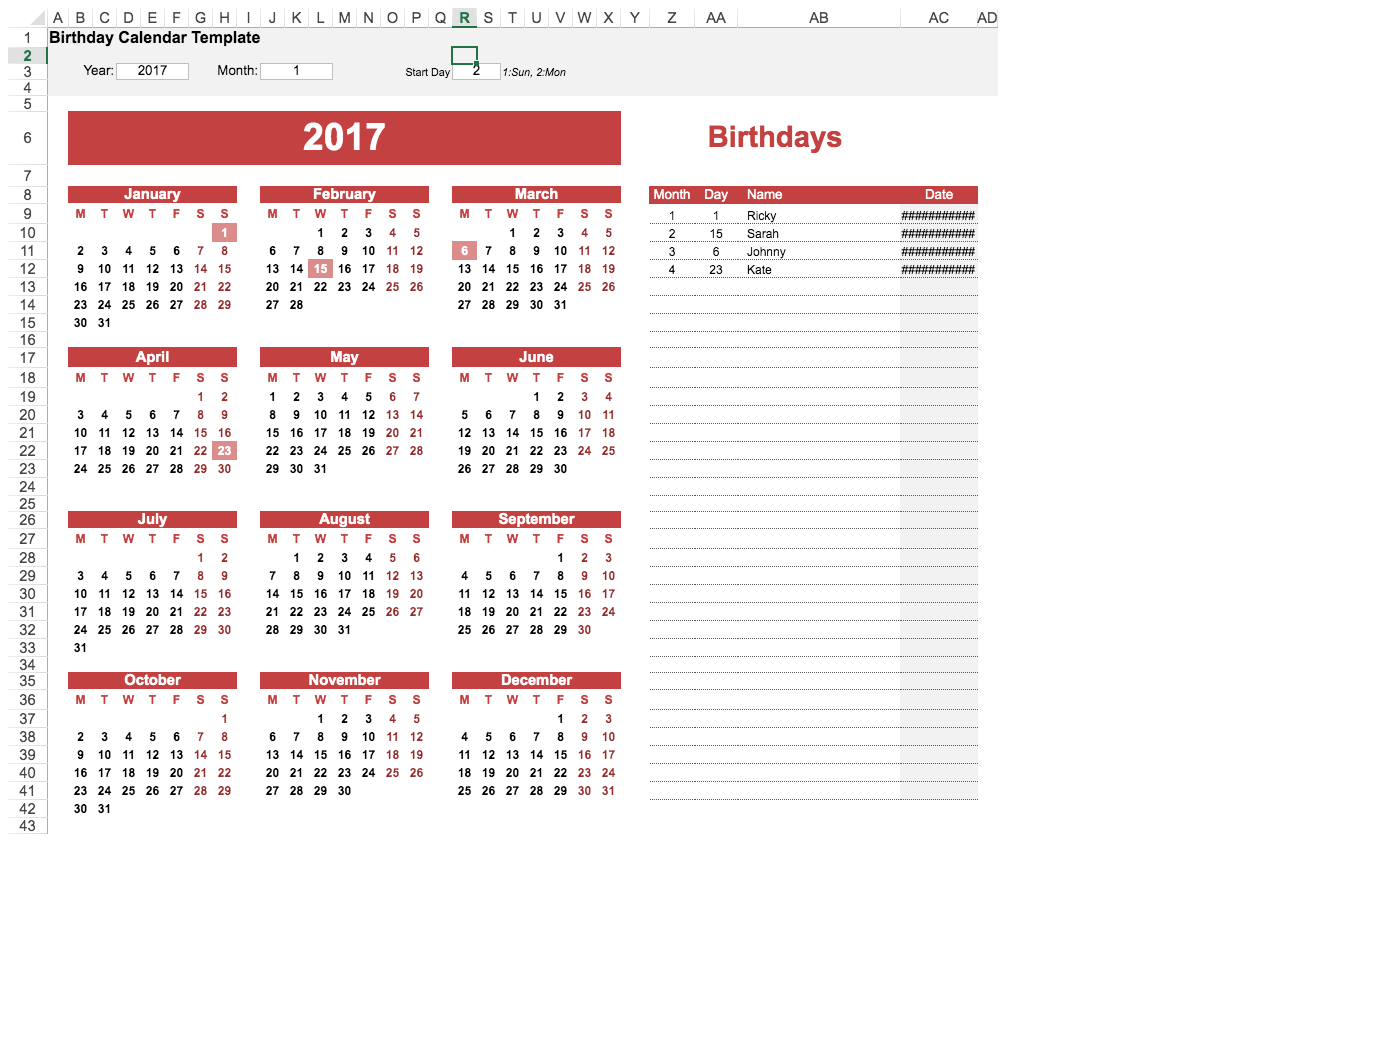 Yearly Birthday Calendar Template Template | Visual Paradigm for Yearly Birthday Calendar Template